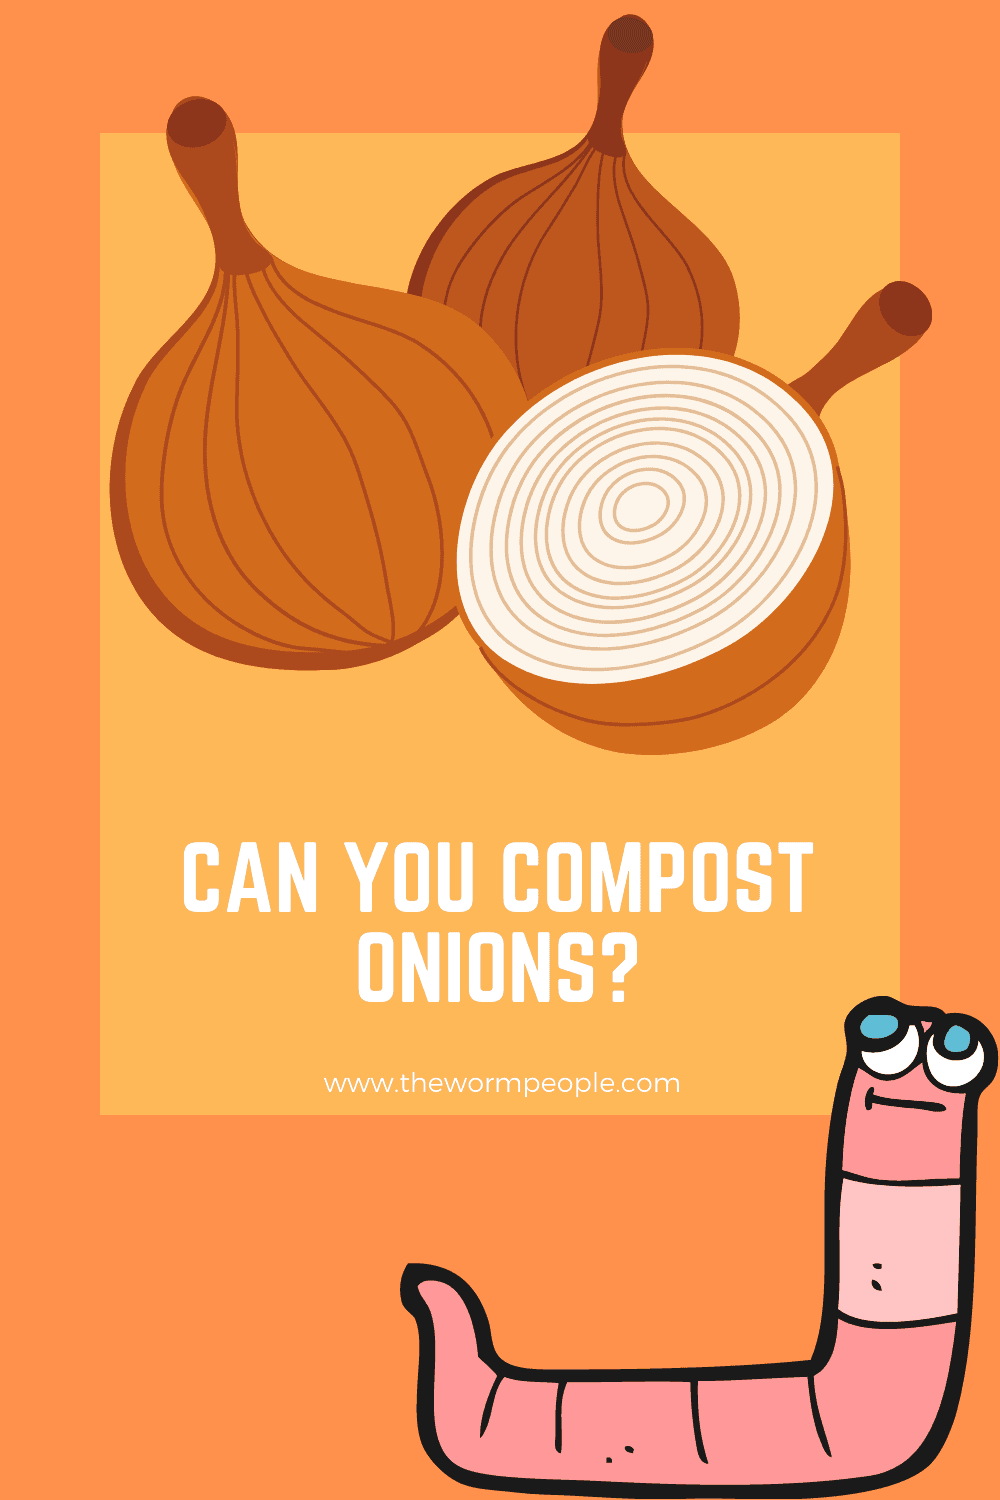 Can You Compost Onions?